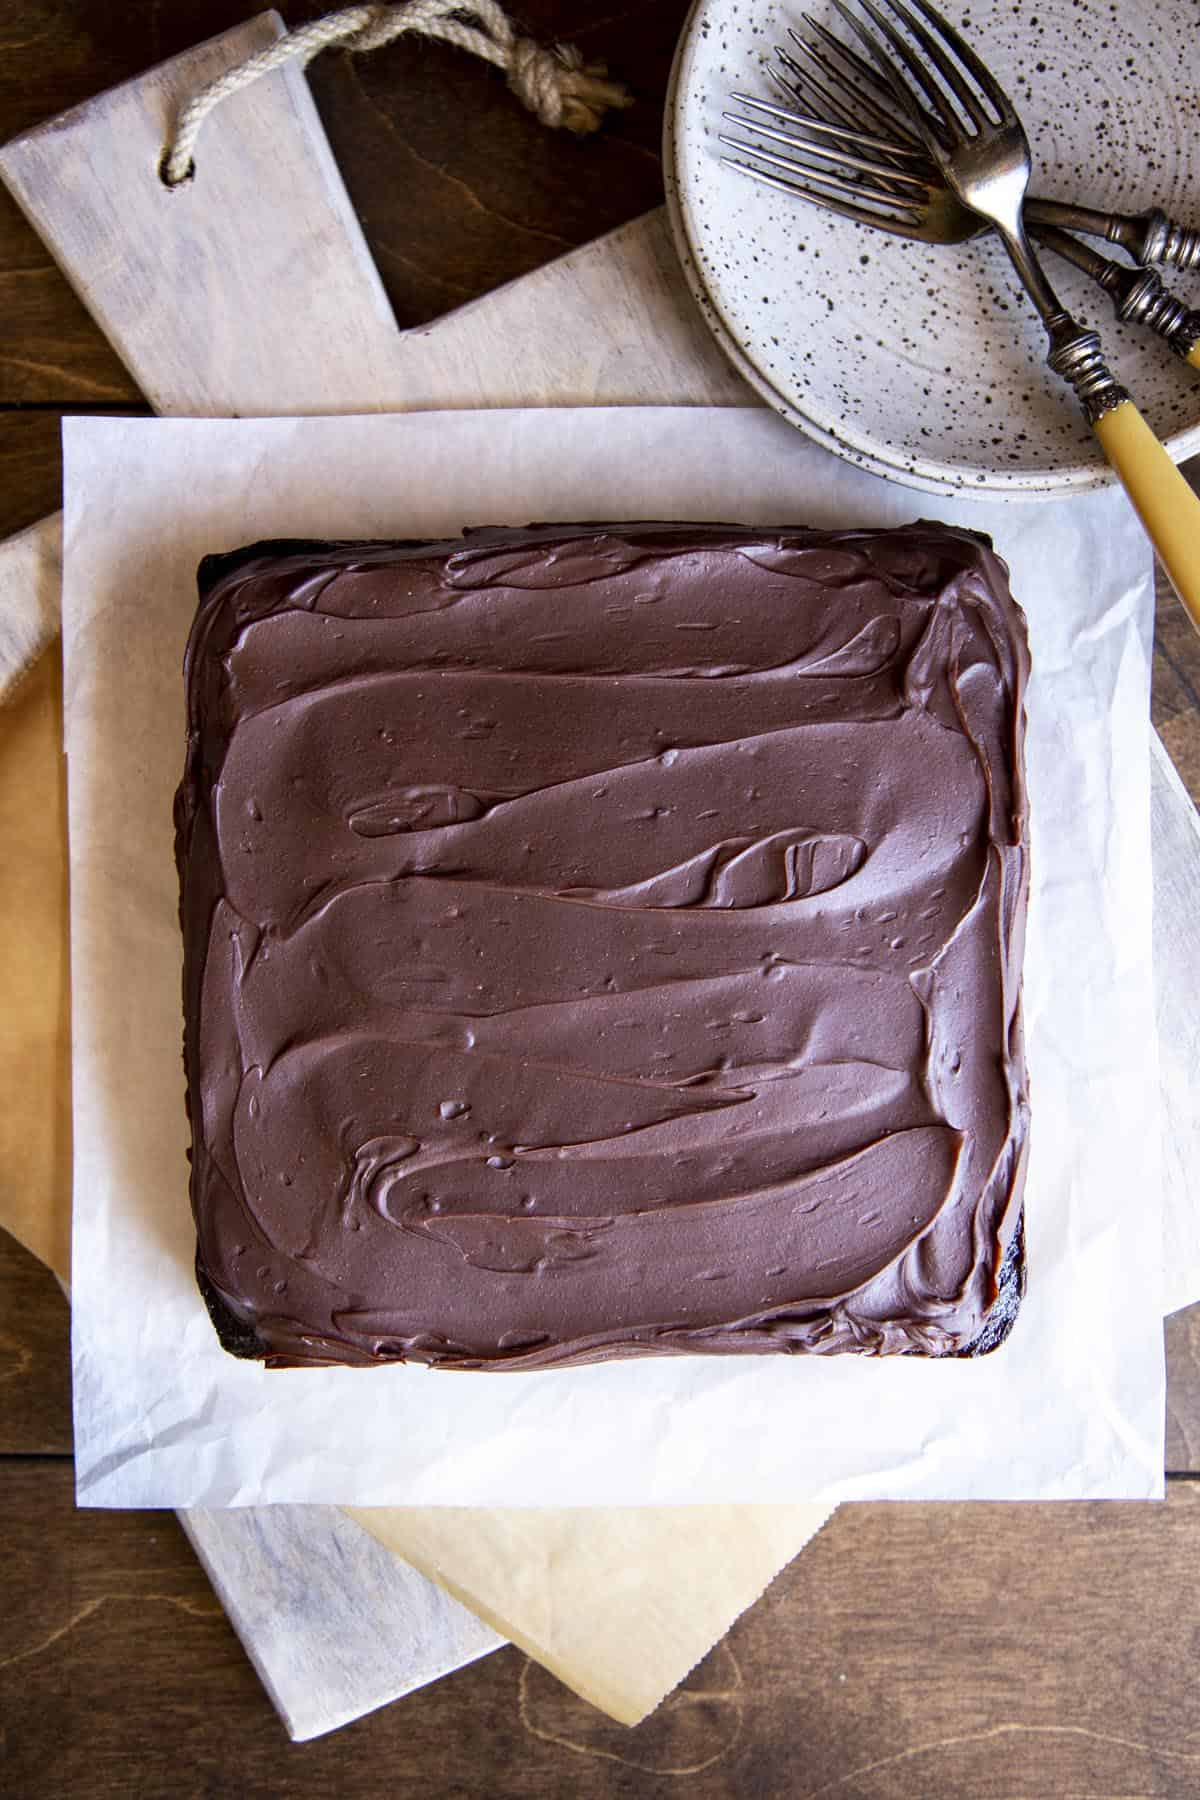 Olive Oil Chocolate Cake with chocolate ganache spread on top sitting on a wooden board.